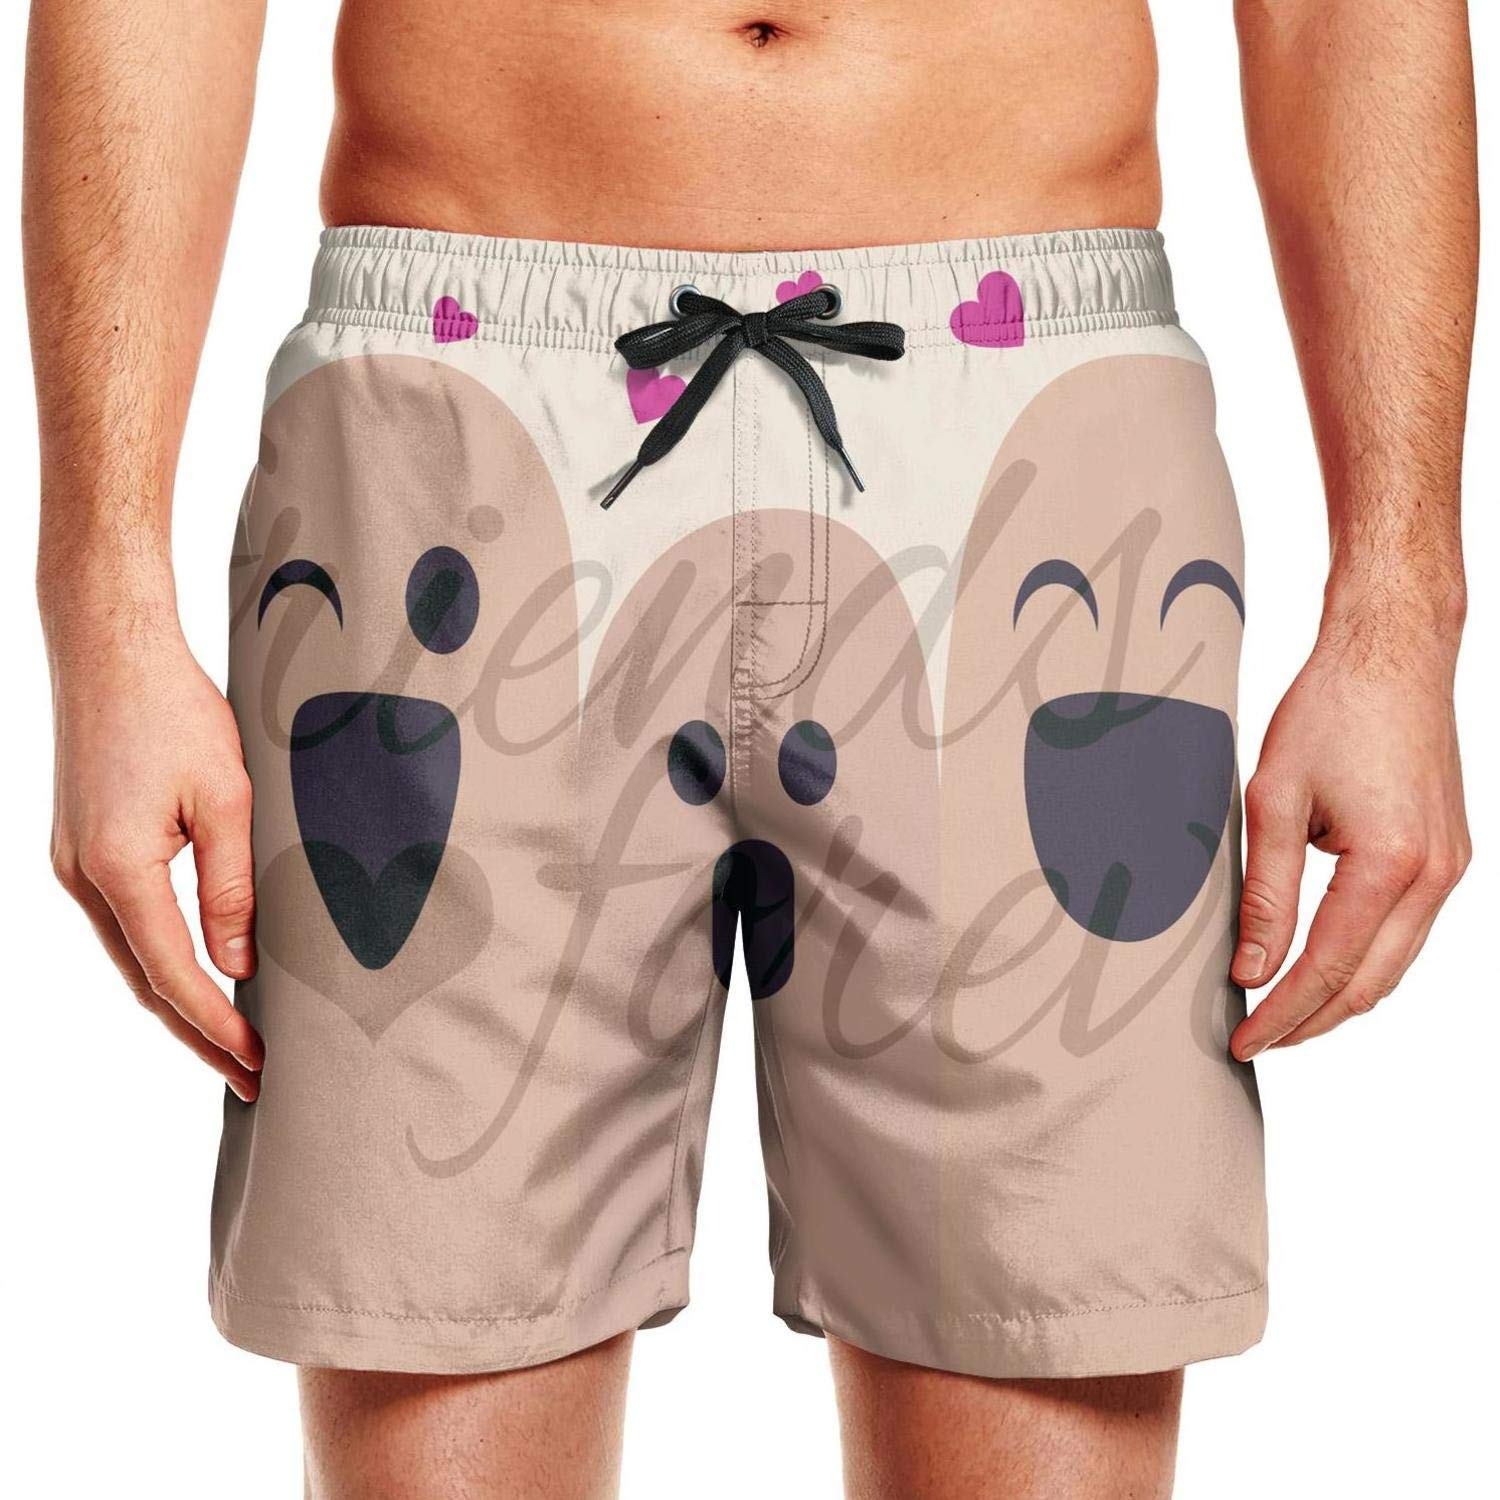 Fun Quick-Dry Classic Comfortable Fashion Mens Printed Beach Pants Swim Trunks Shorts Football Happy Best Friend Day Poster Trend